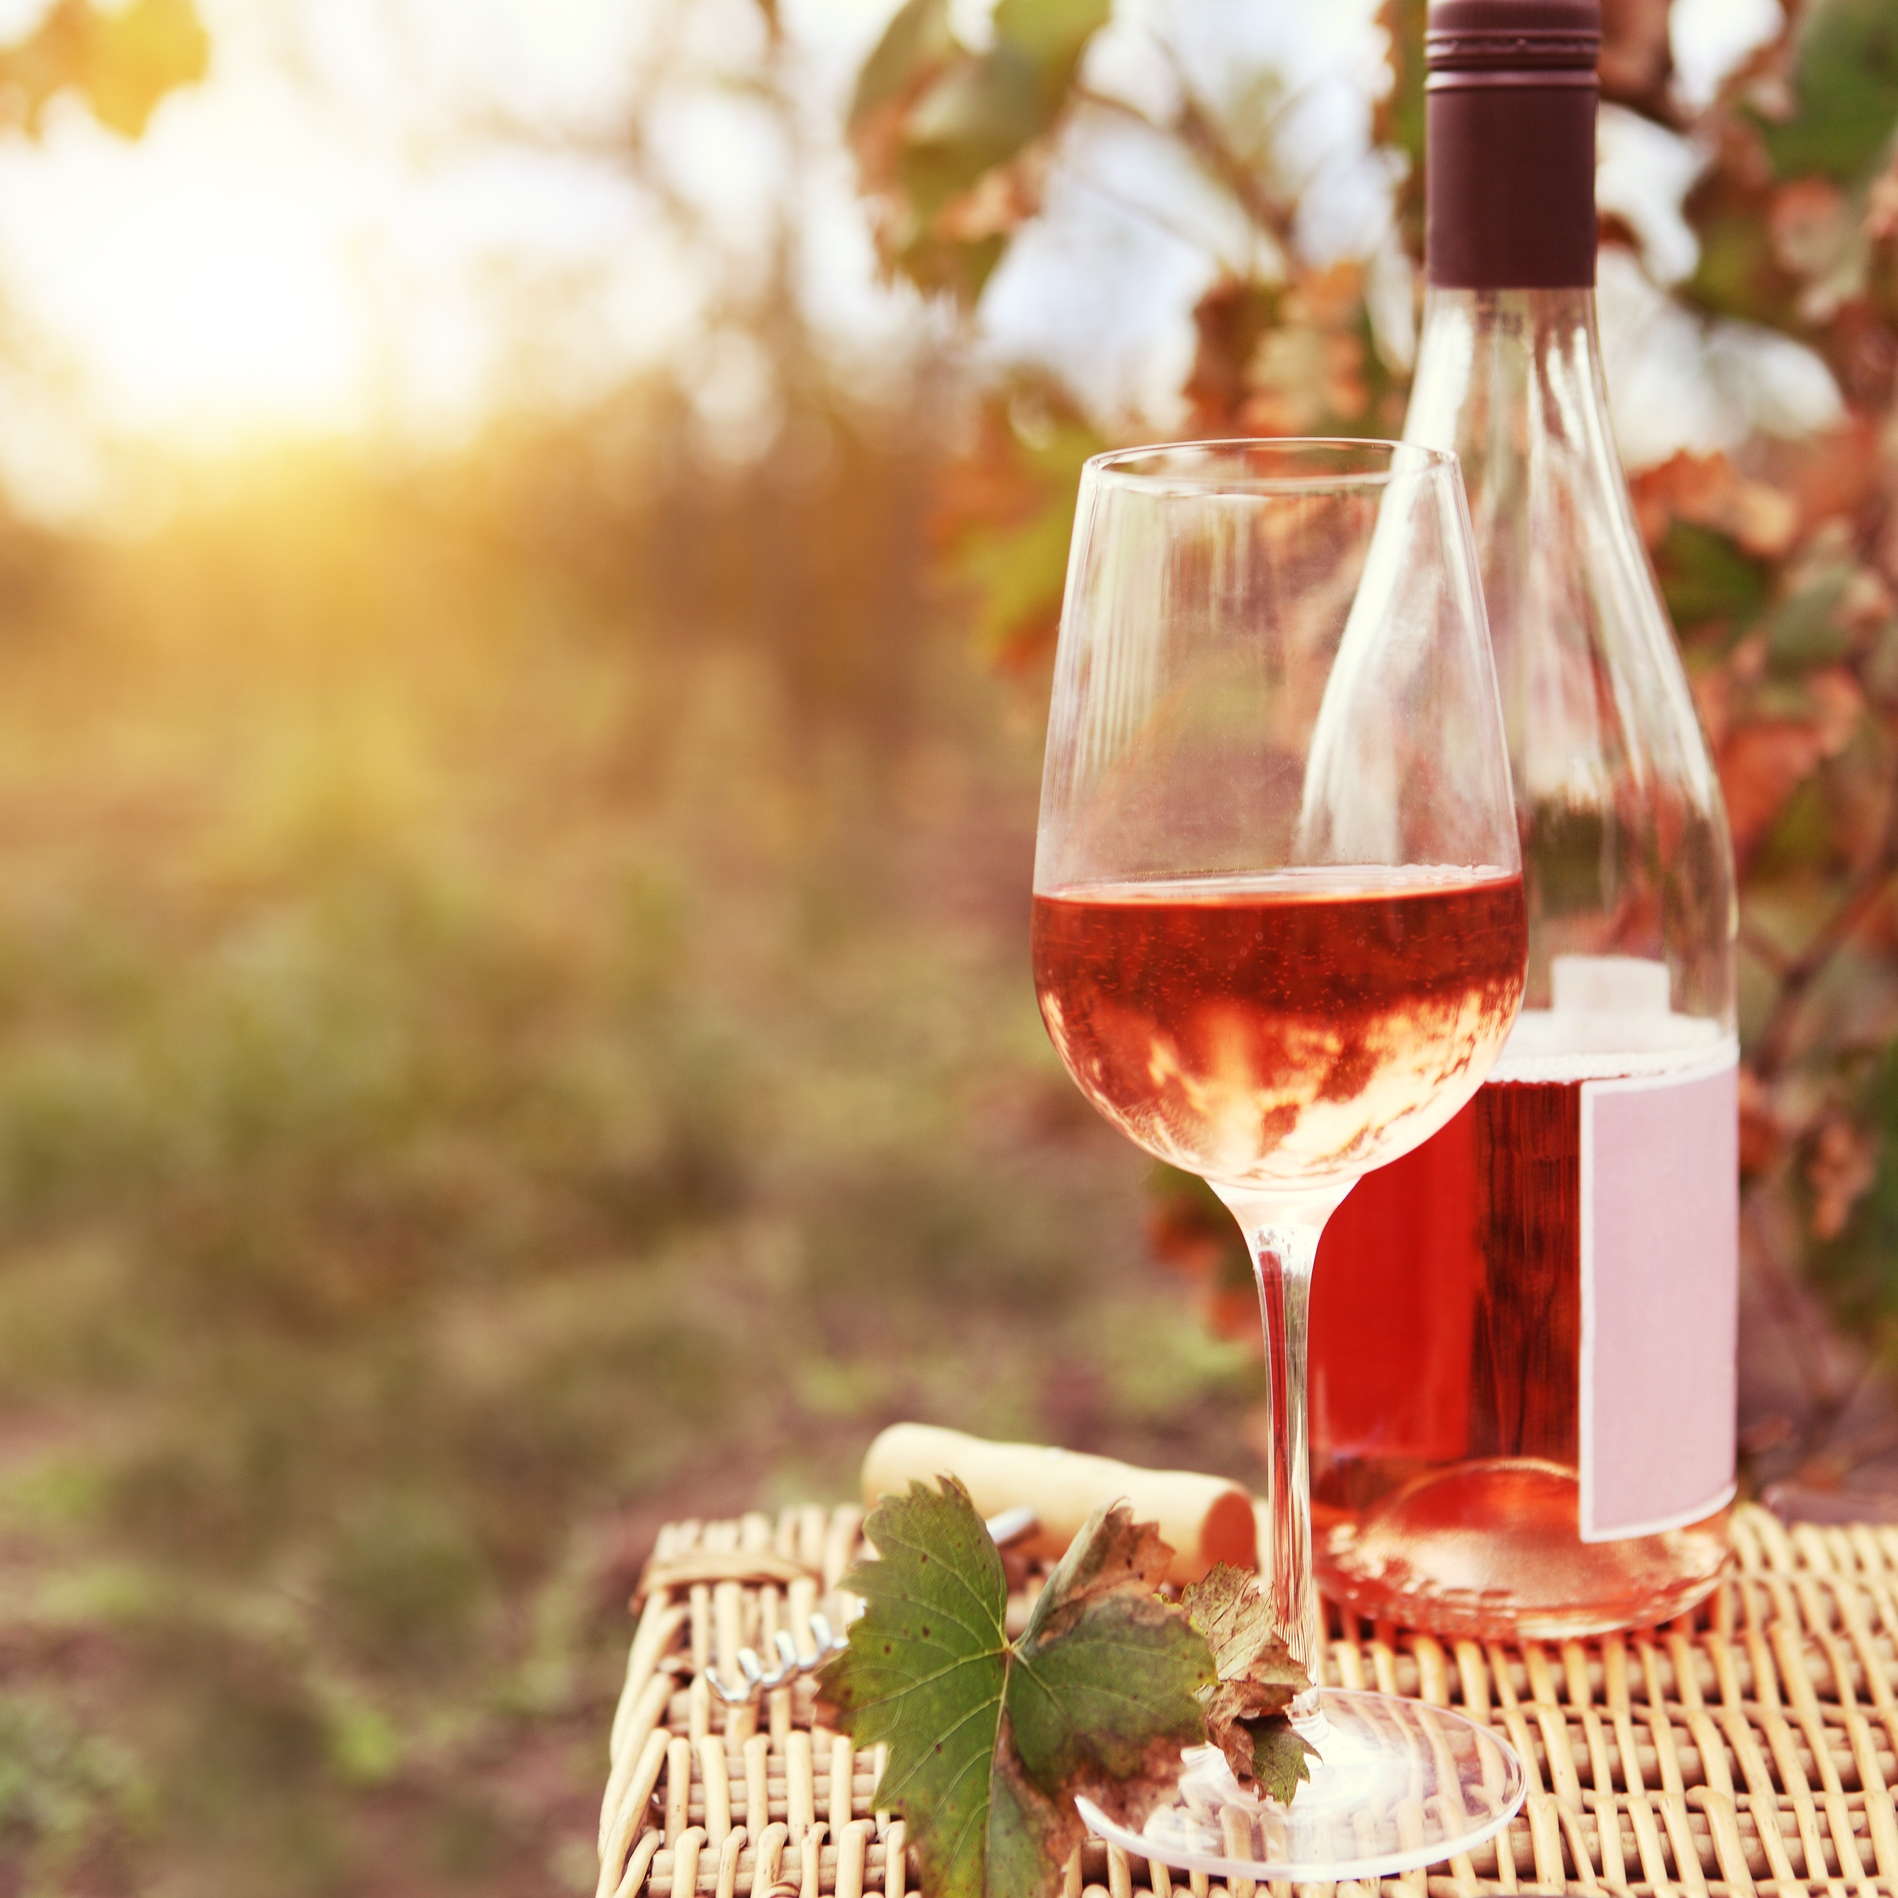 Picnic wine - The 12-month rosé party